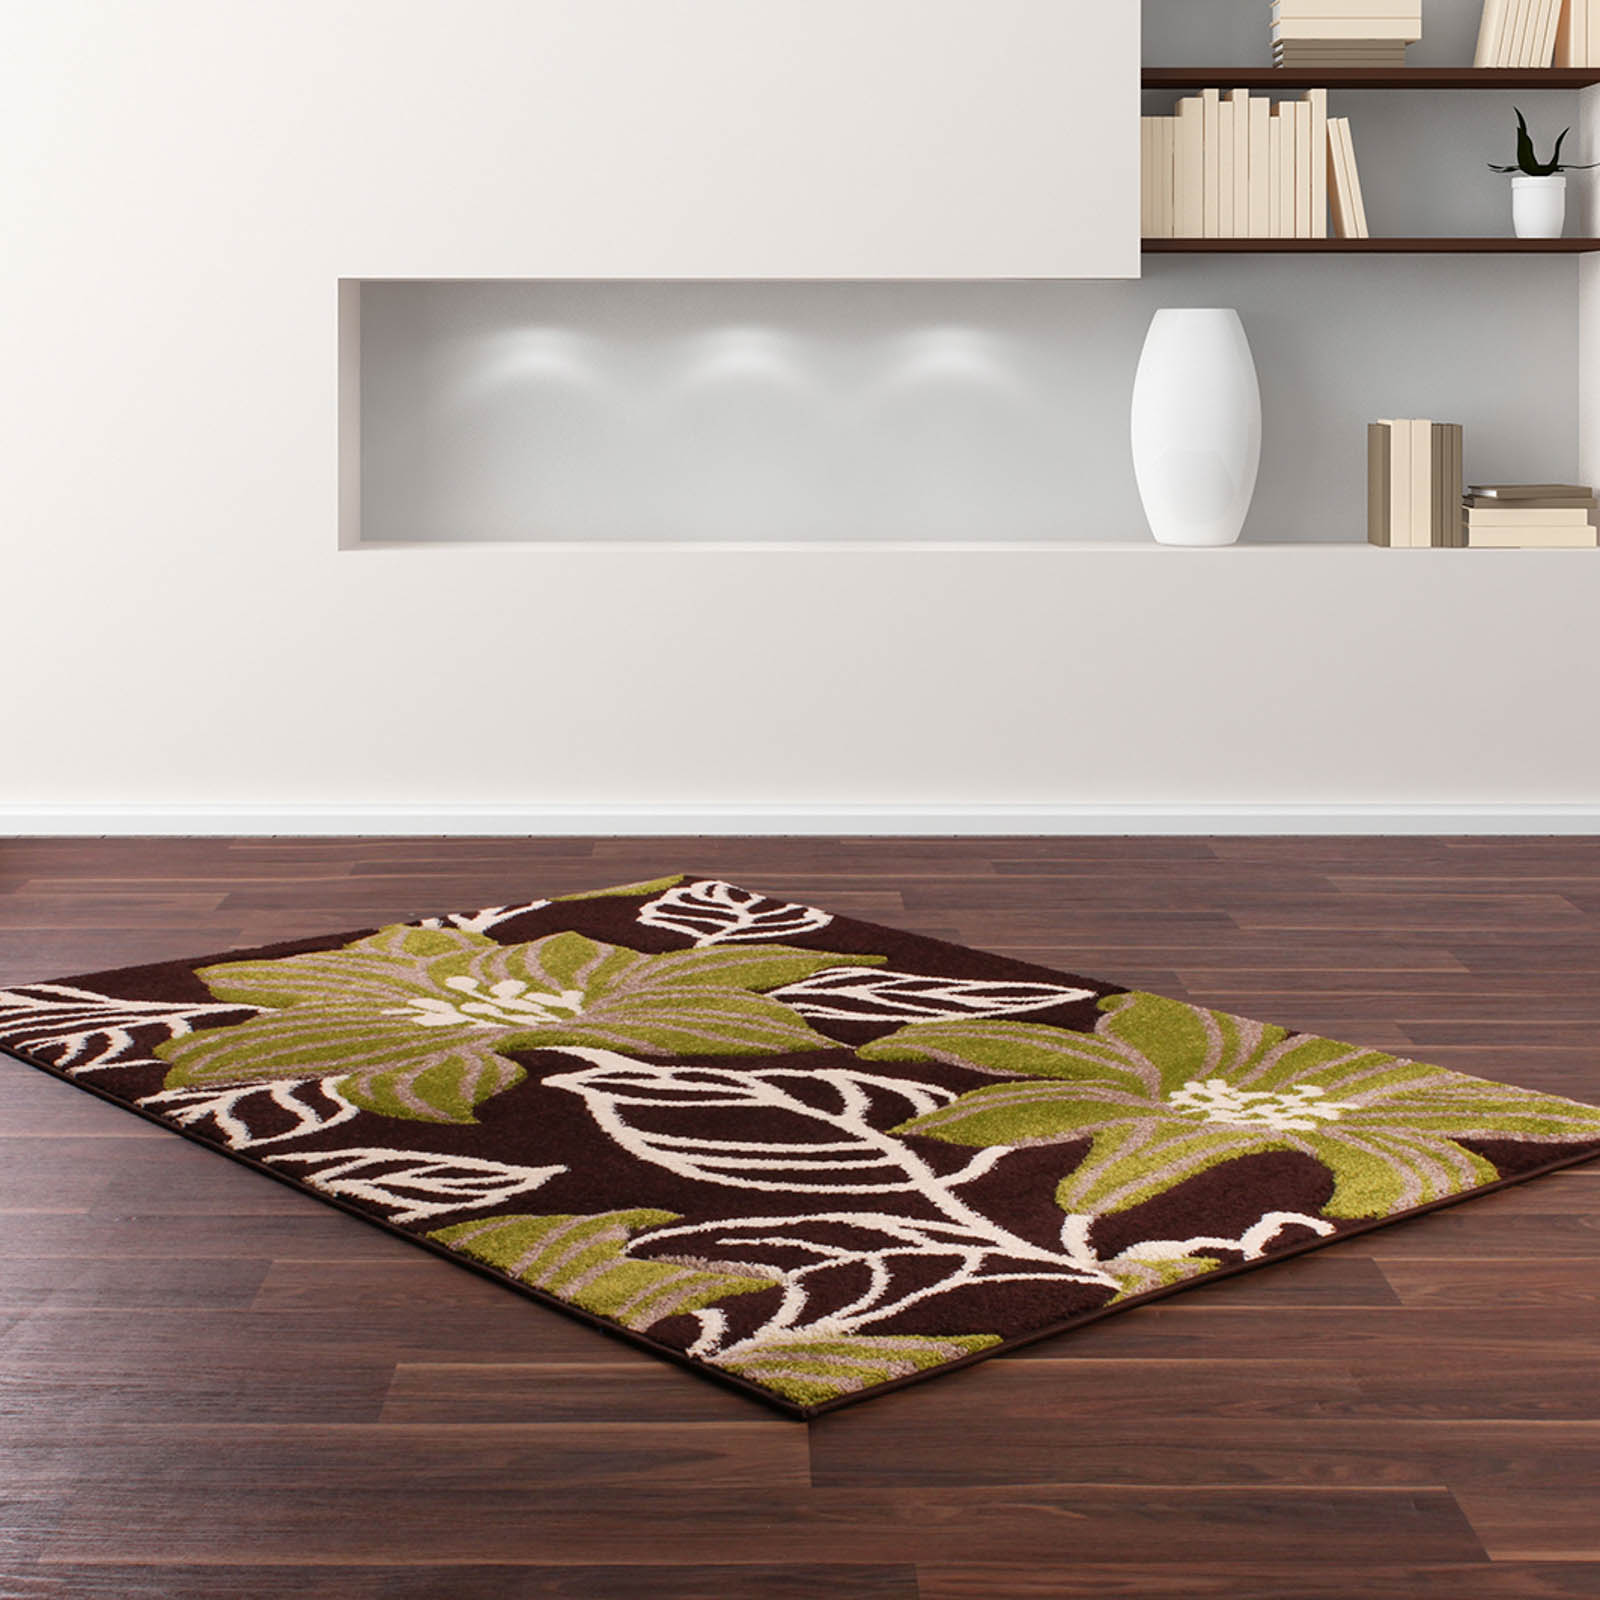 Rapello Botanic Rugs in Chocolate Brown and Green